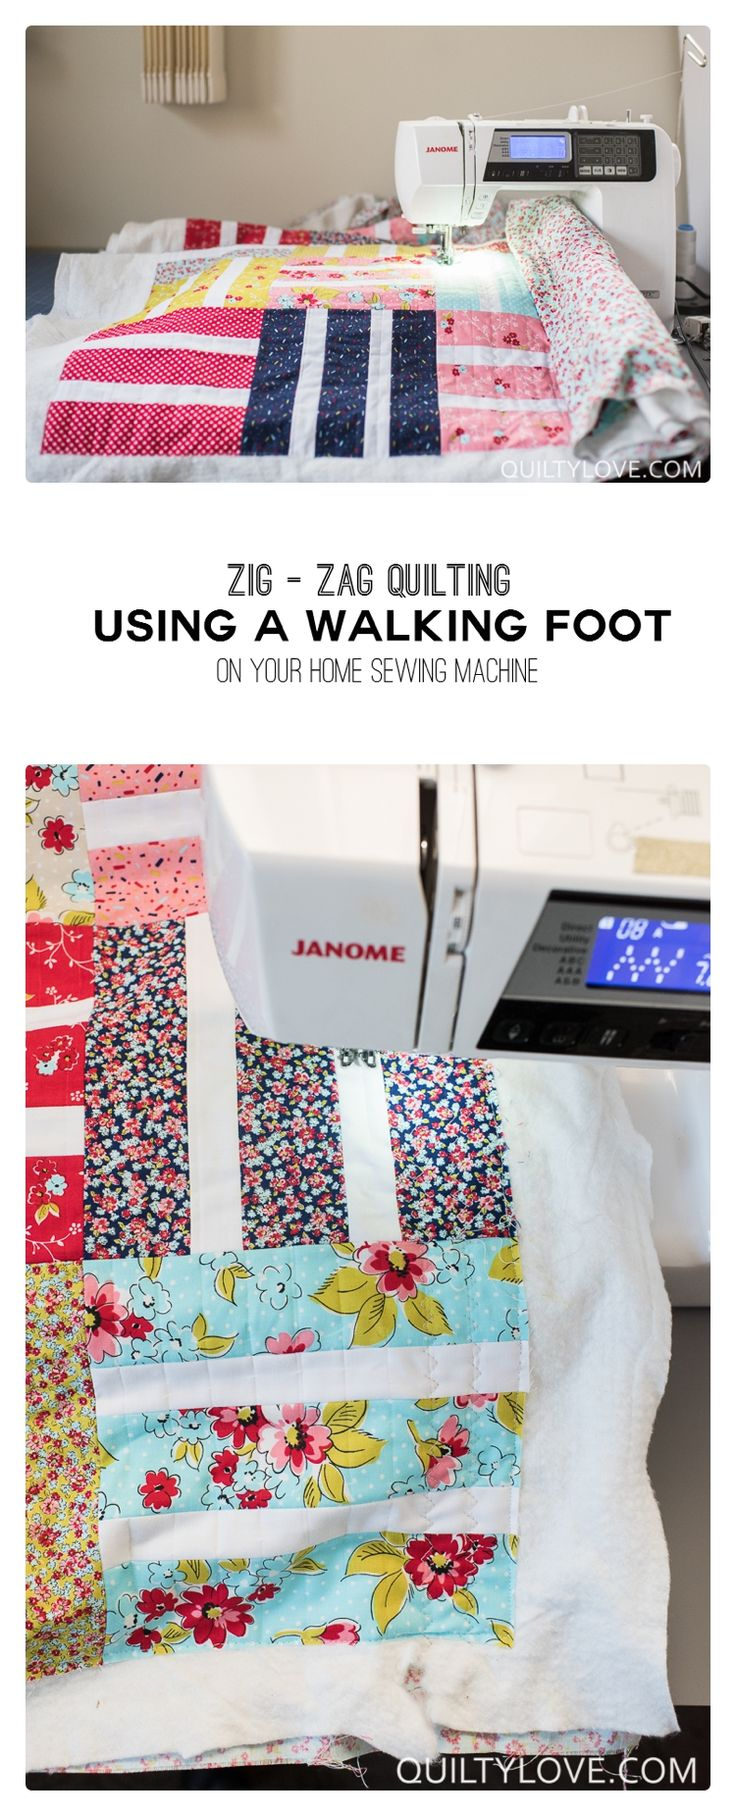 How to quilt zig zag walking foot quilting using your walking foot on  your home sewing machine. Easy walking foot quilting to quilt your own  quilts.  Free quilting tutorial by Emily of quiltylove.com.